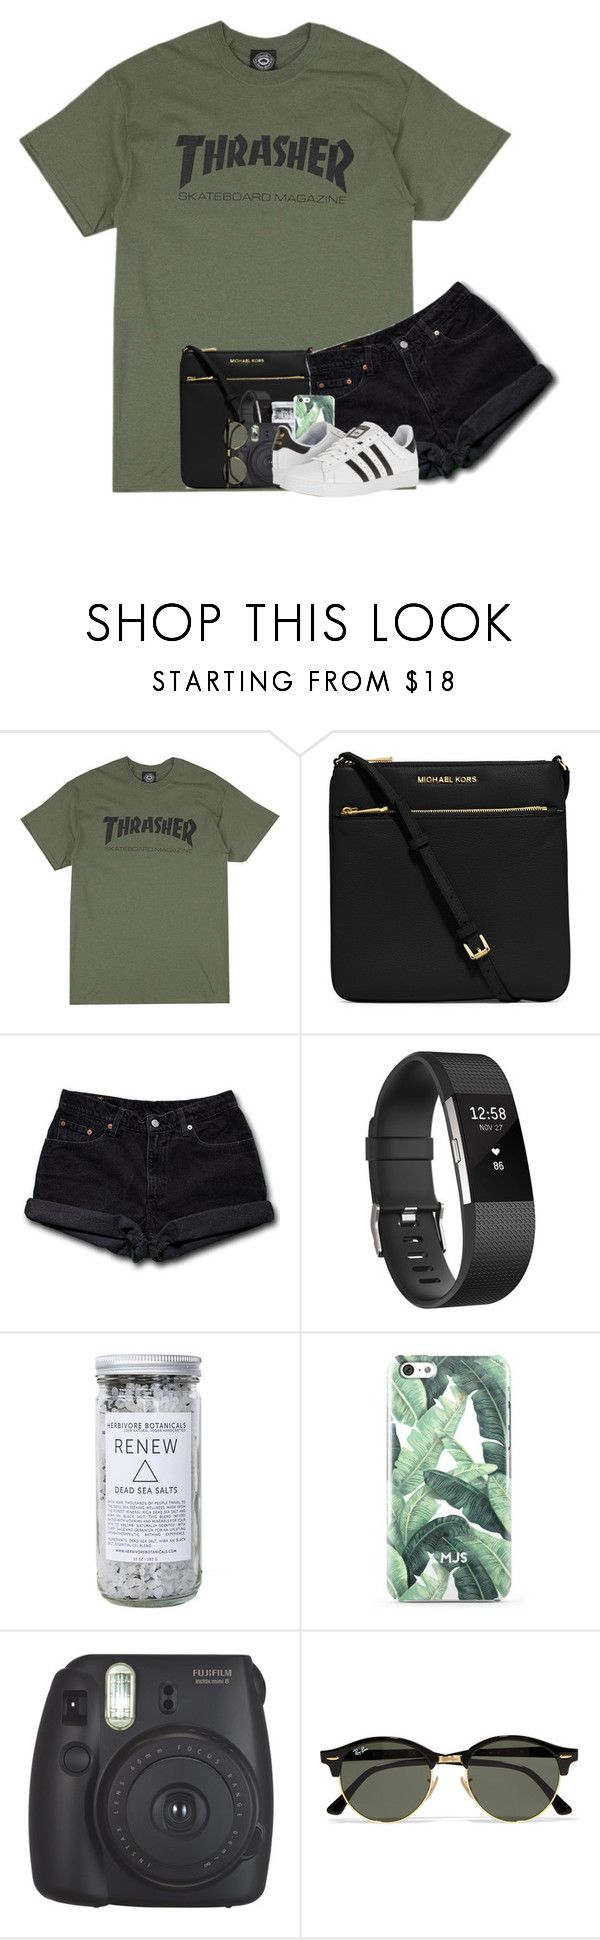 """Colors of the Rainbow: Green Contest {rtd4group}"" by katie-1111 ❤ liked on Polyvore featuring MICHAEL Michael Kors, Levi's, Fitbit, Herbivore, Fujifilm, Ray-Ban, adidas, katieRtopsets and katiehasfavorites"